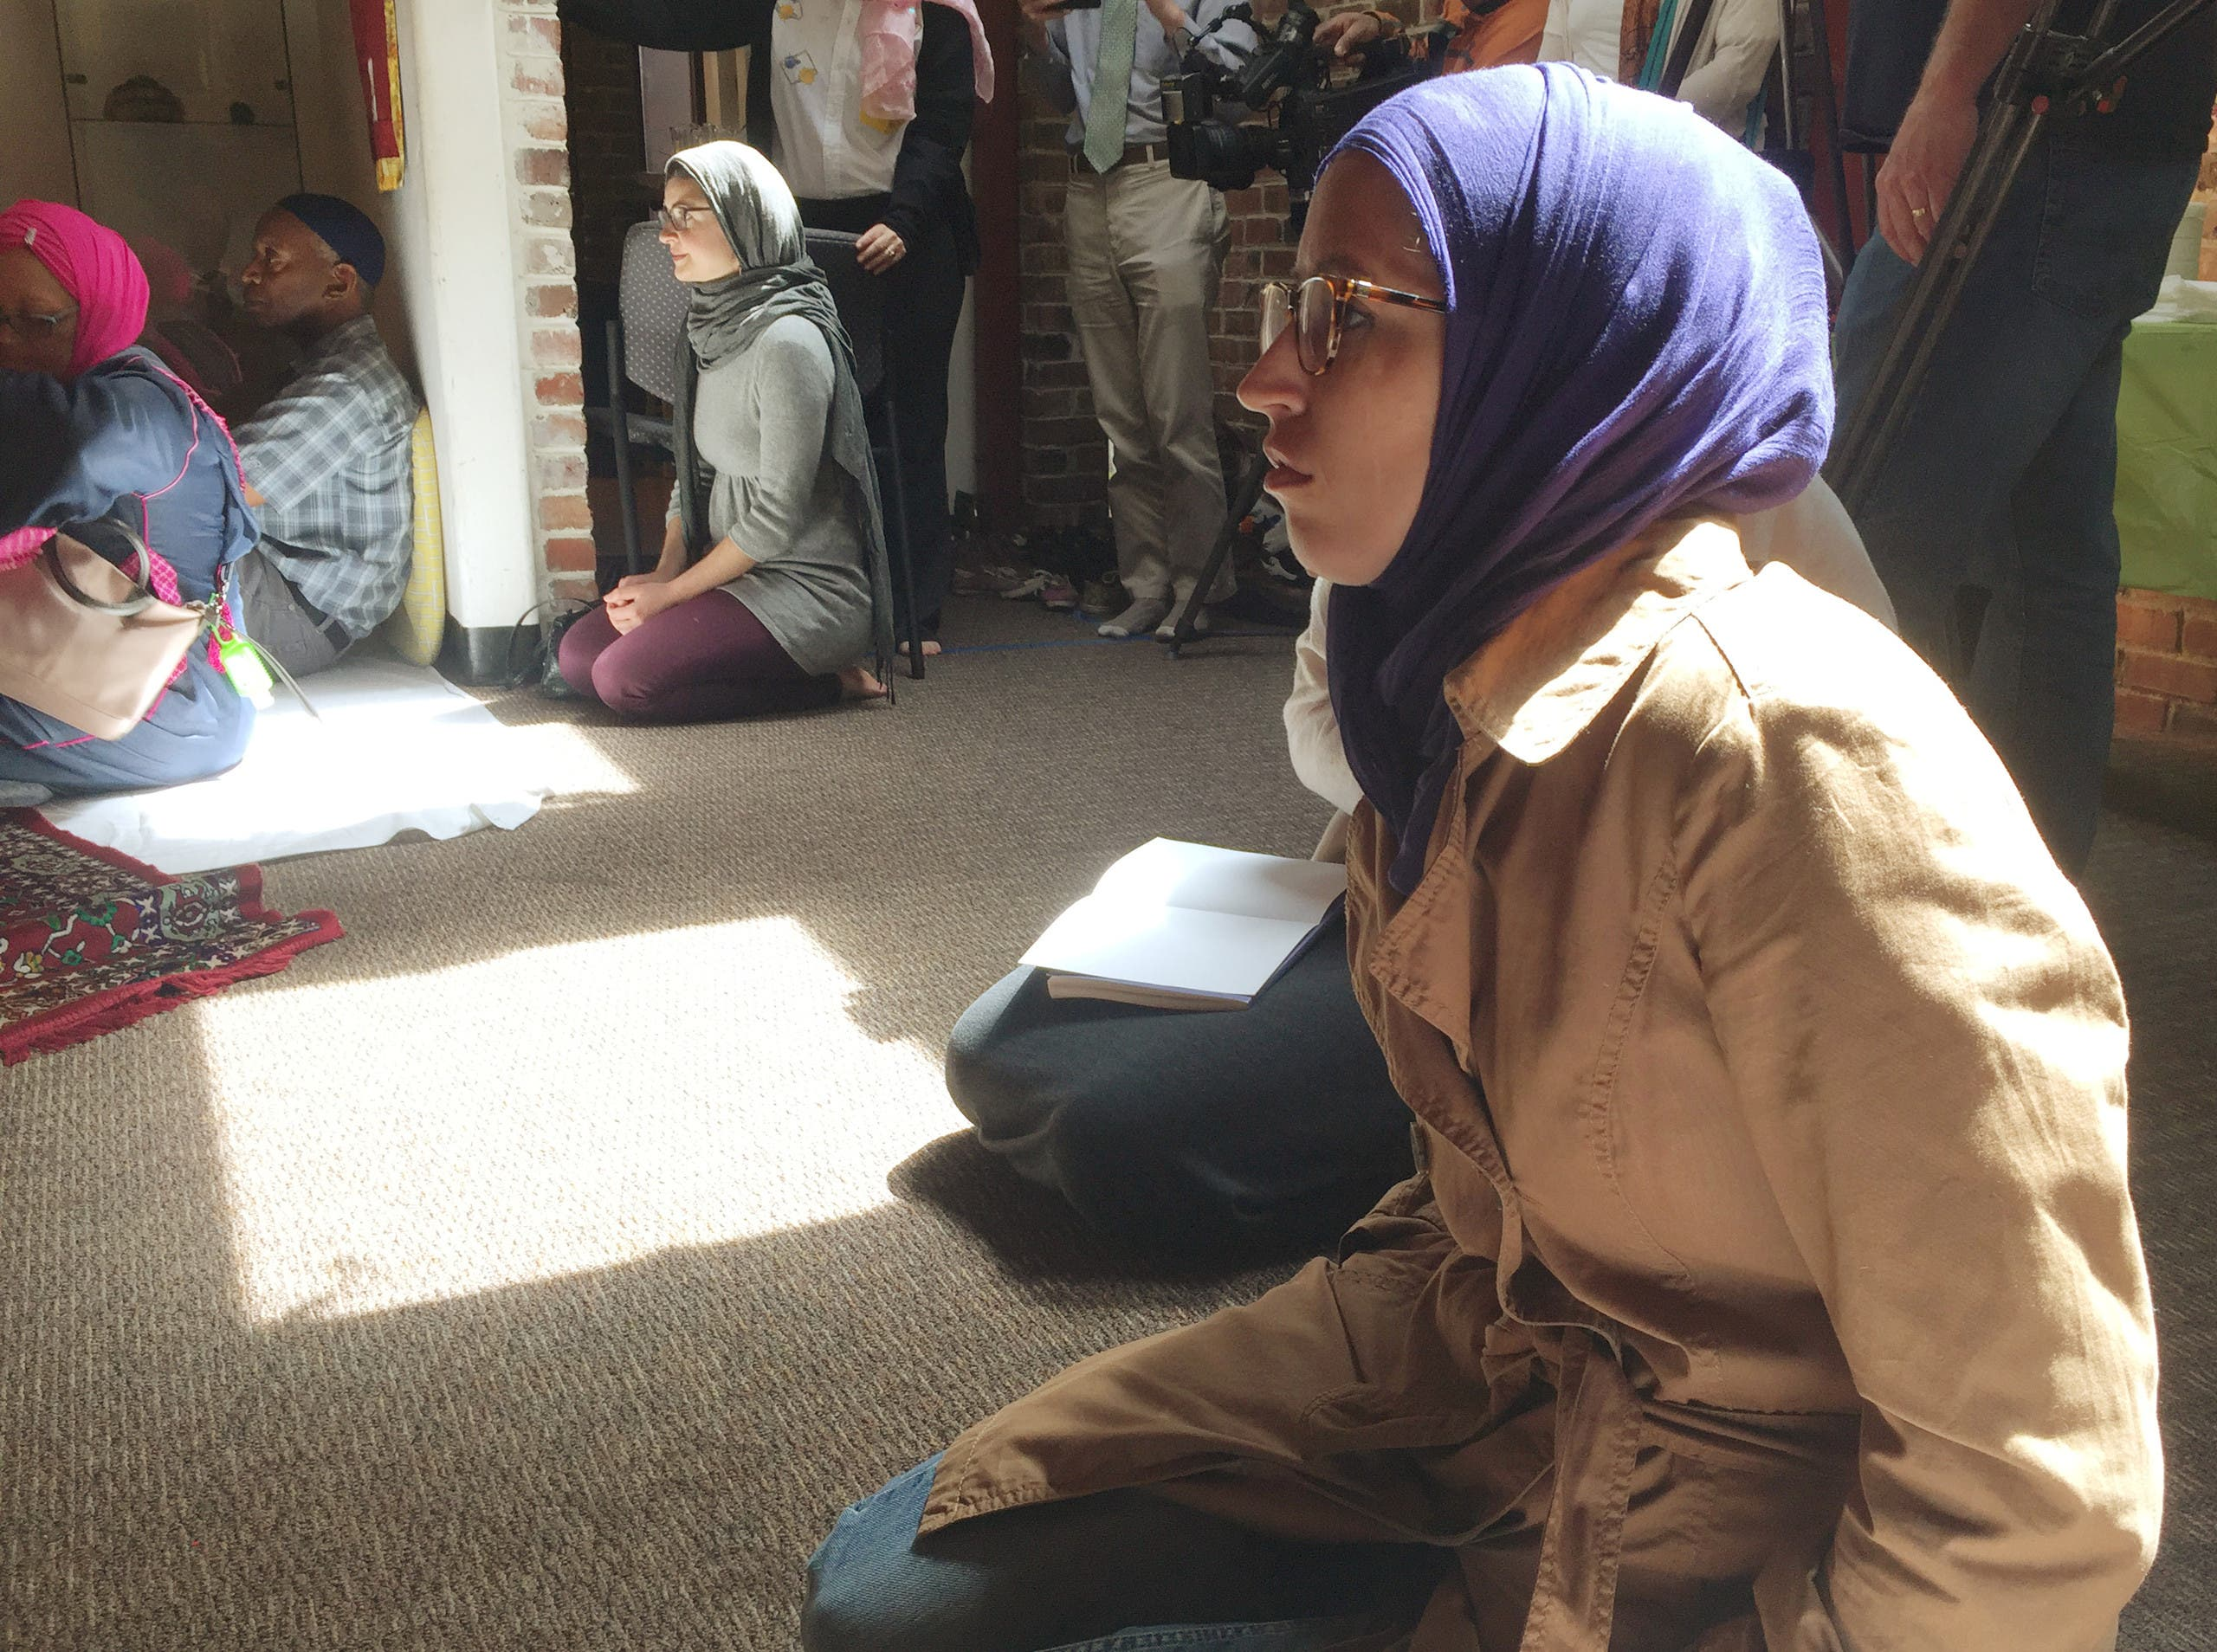 Worshipers sit and listen to prayers and a sermon at the Qal'bu Maryam Women's Mosque which held its first service on Good Friday, at the Starr King School for the Ministry in Berkeley, California, U.S., April 14, 2017. REUTERS/Lisa Fernandez